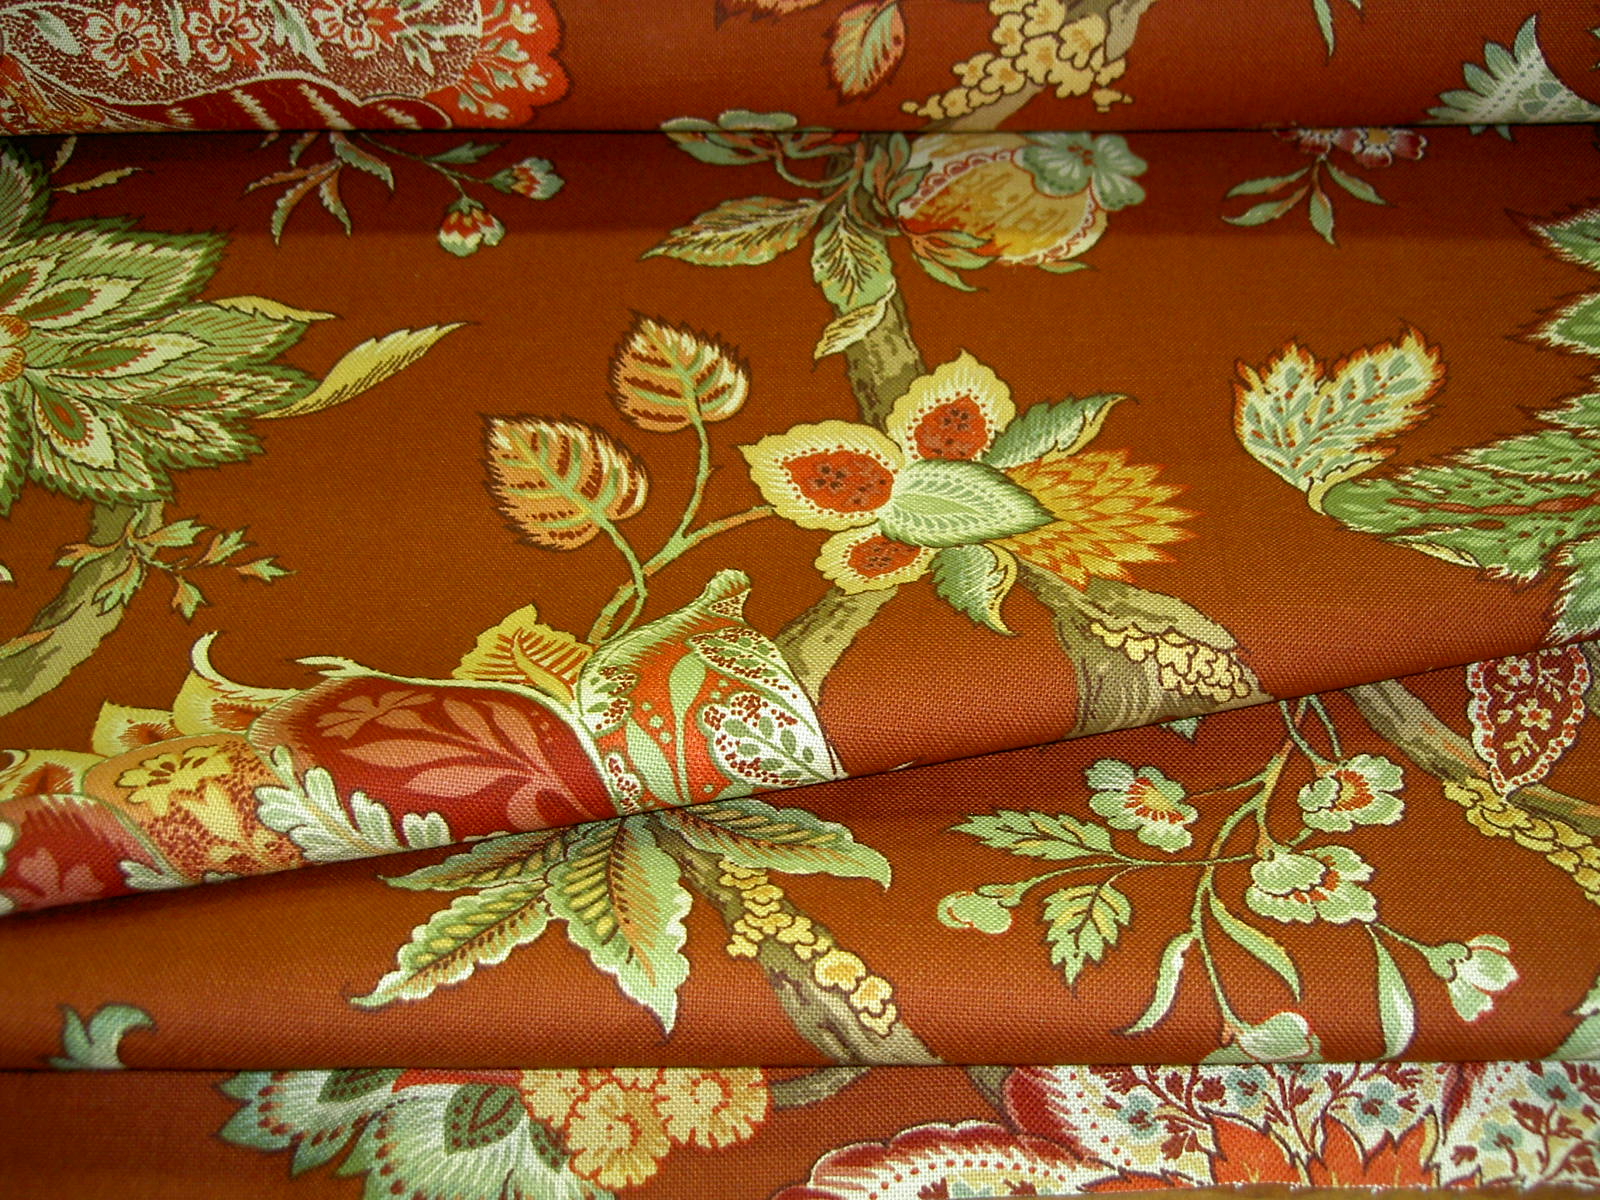 Discount Designer Home Decor beautiful discount designer home decor Braemore Fabrics Pattern Monrovia Oxf Color Burnt Sienna Home Decor Multi Use Fabric